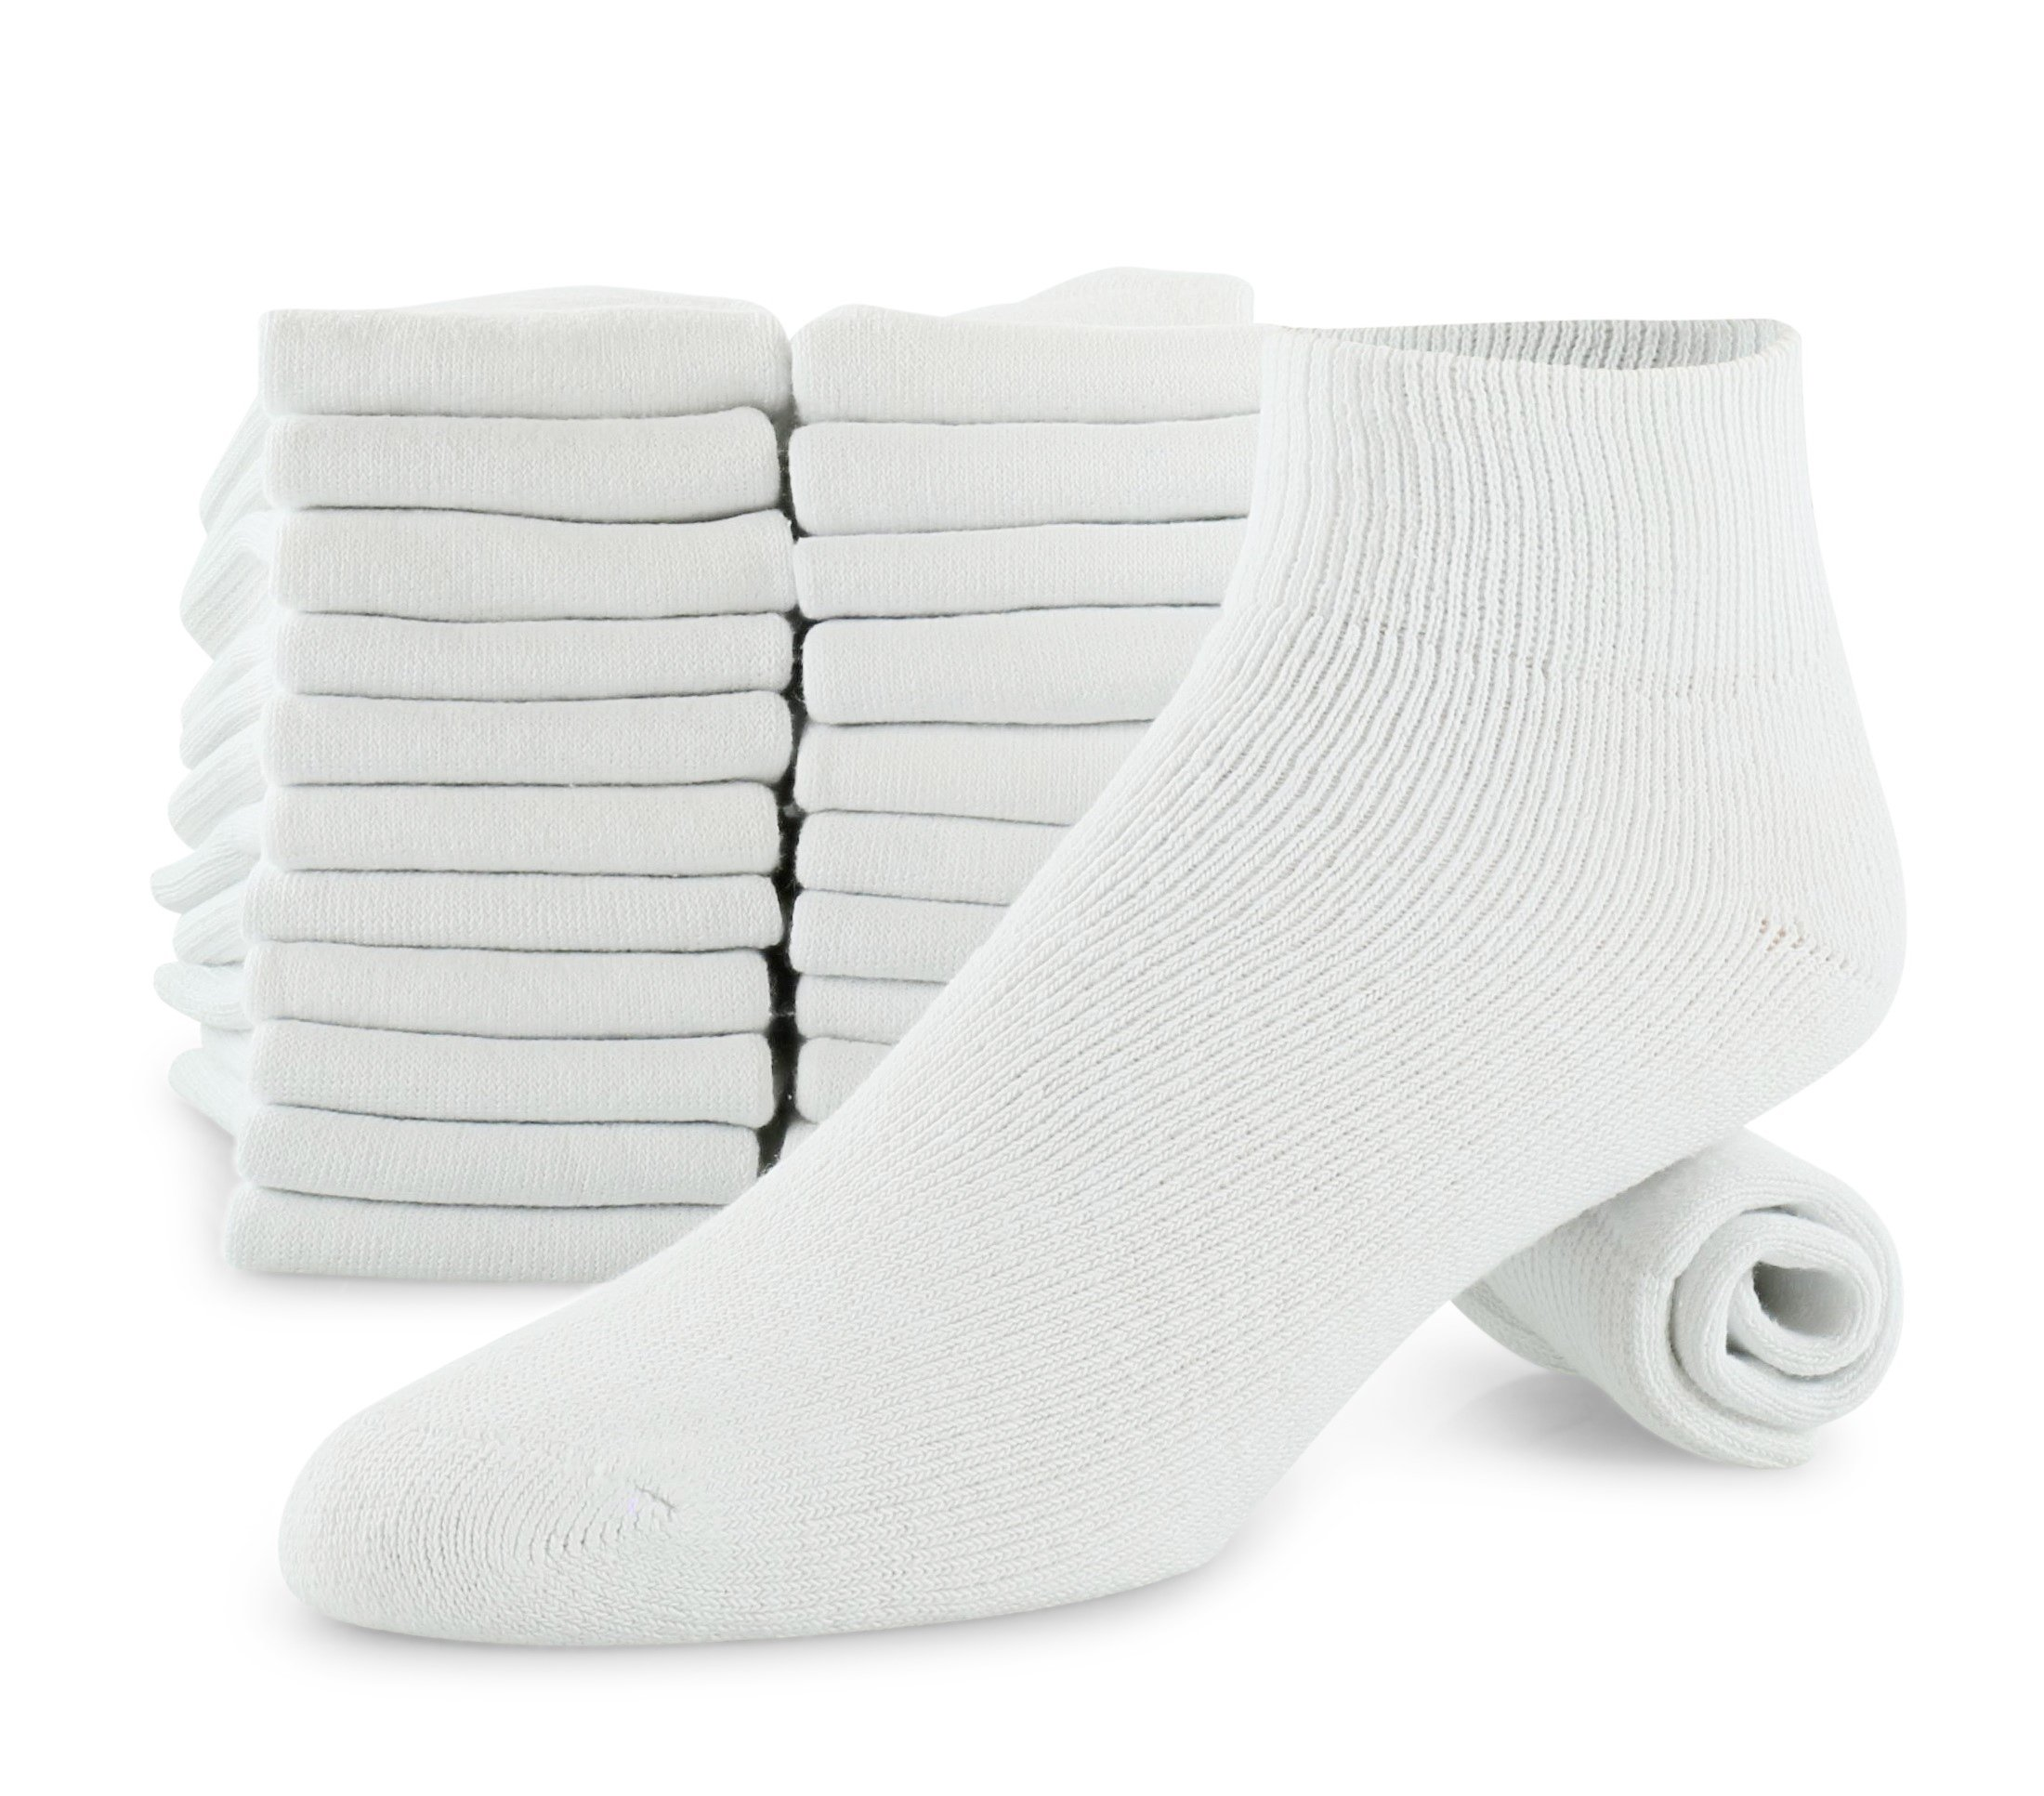 Men's 12-Pack Cotton White Ankle Athletic Sock Made For Top National Brand Shoe Size 8-12 Sock Size 10-13